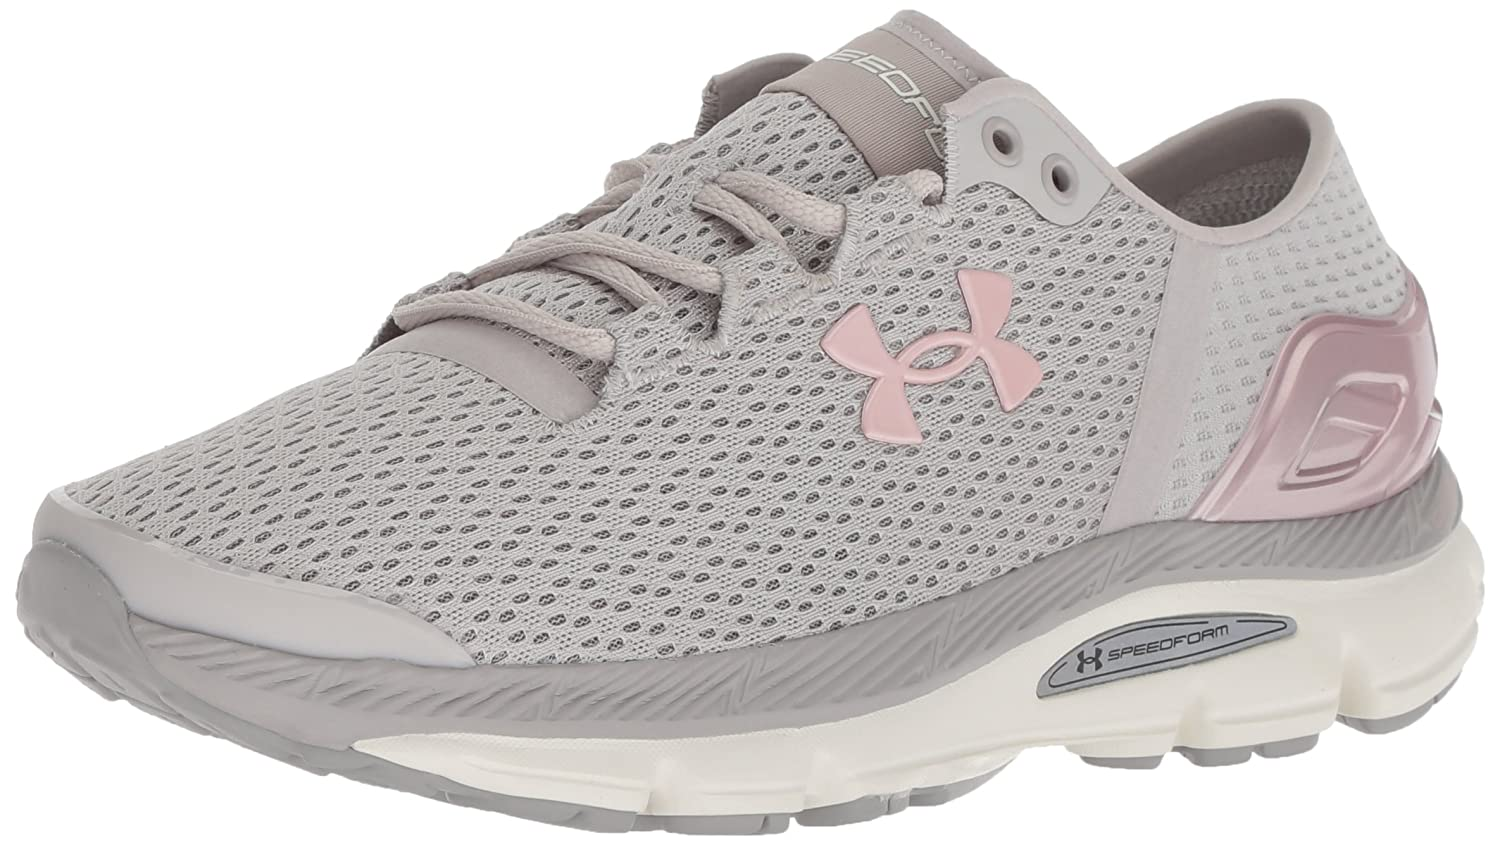 Under Armour Damen Speedform Intake 2 Laufschuhe  | Deutschland Shop